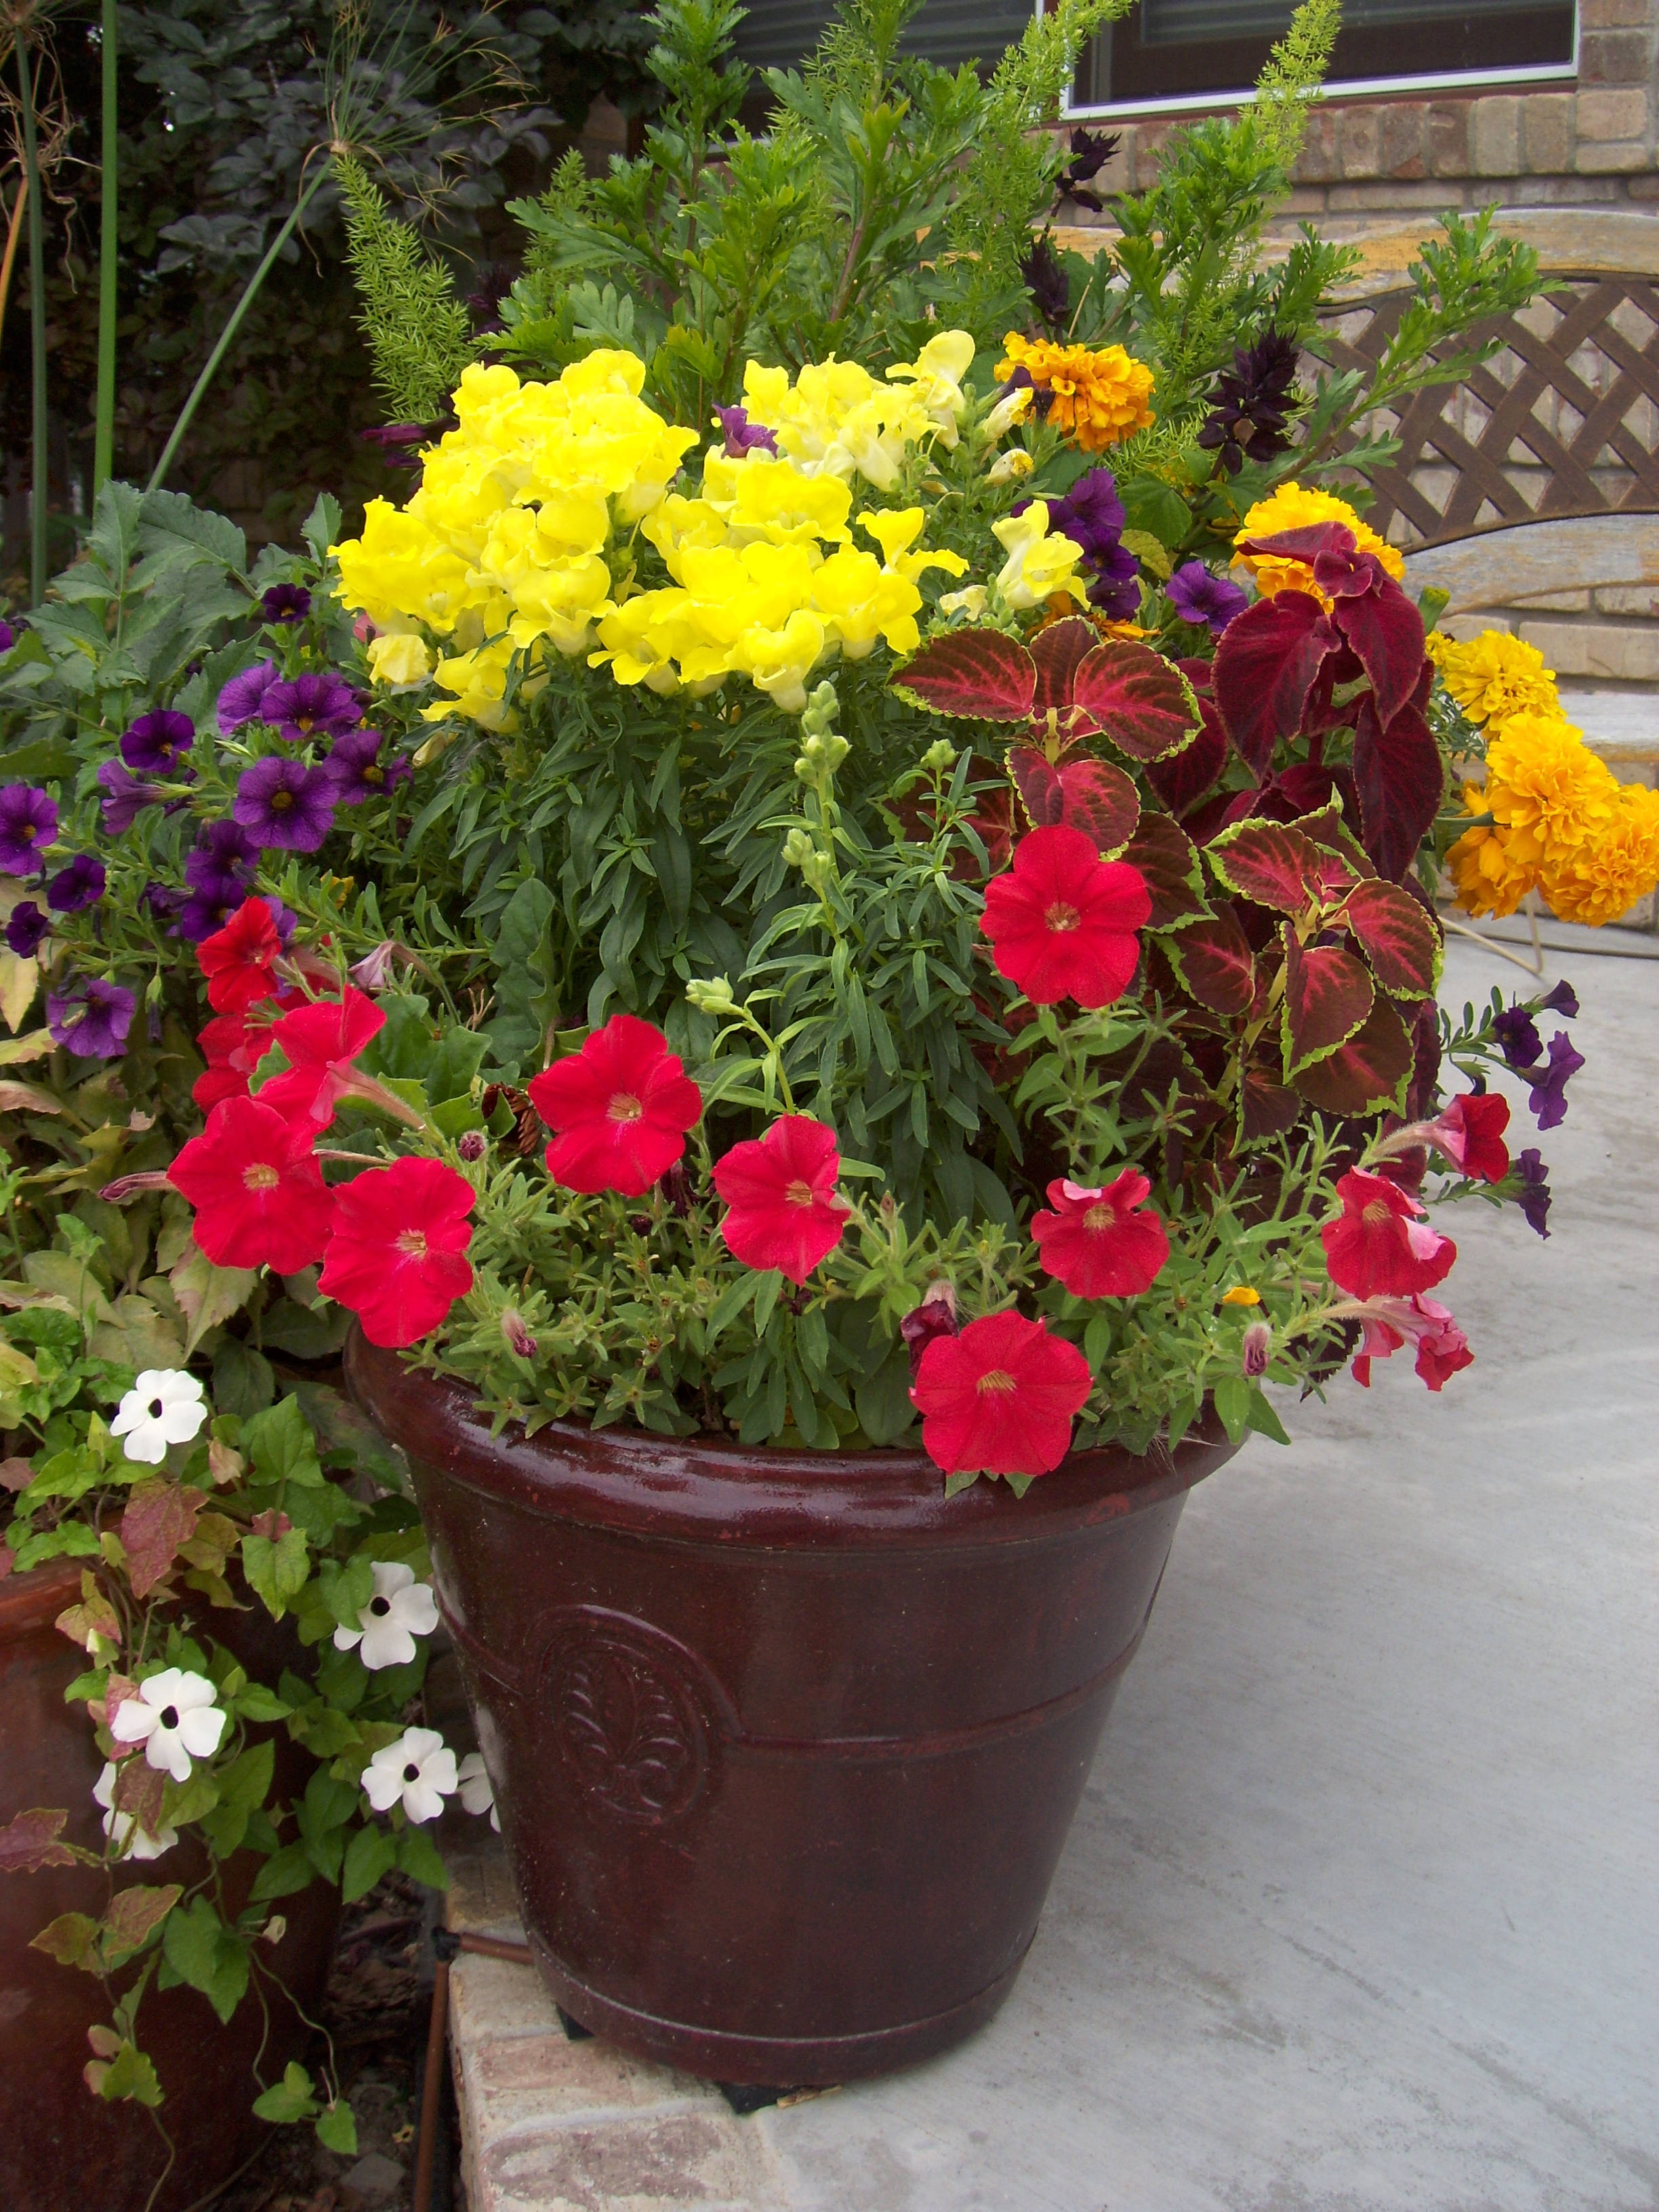 Refreshing Your Container Gardens for Fall